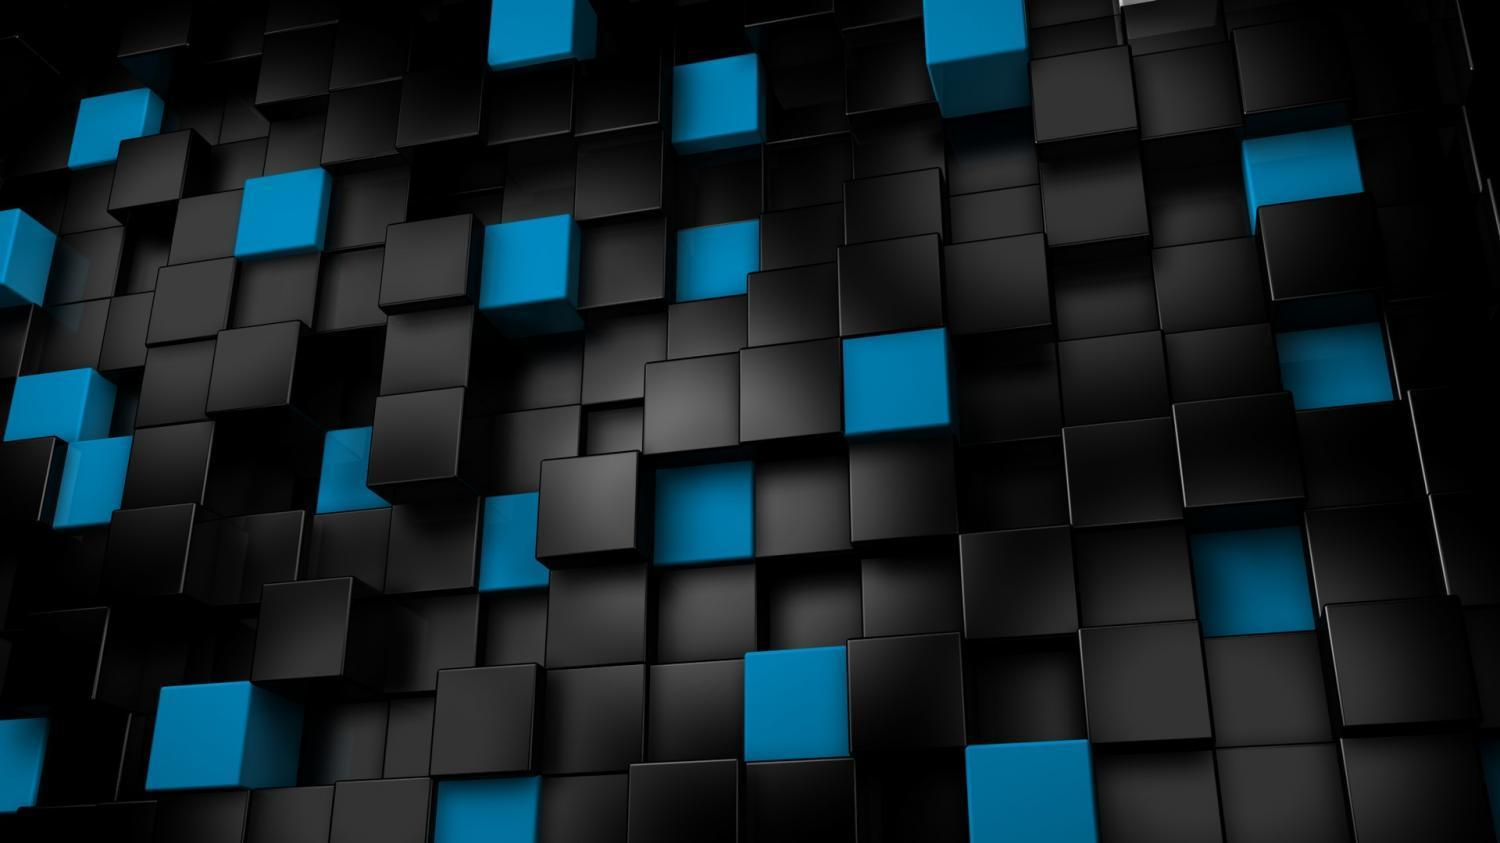 Blue 3D Cubes Wallpapers for Android